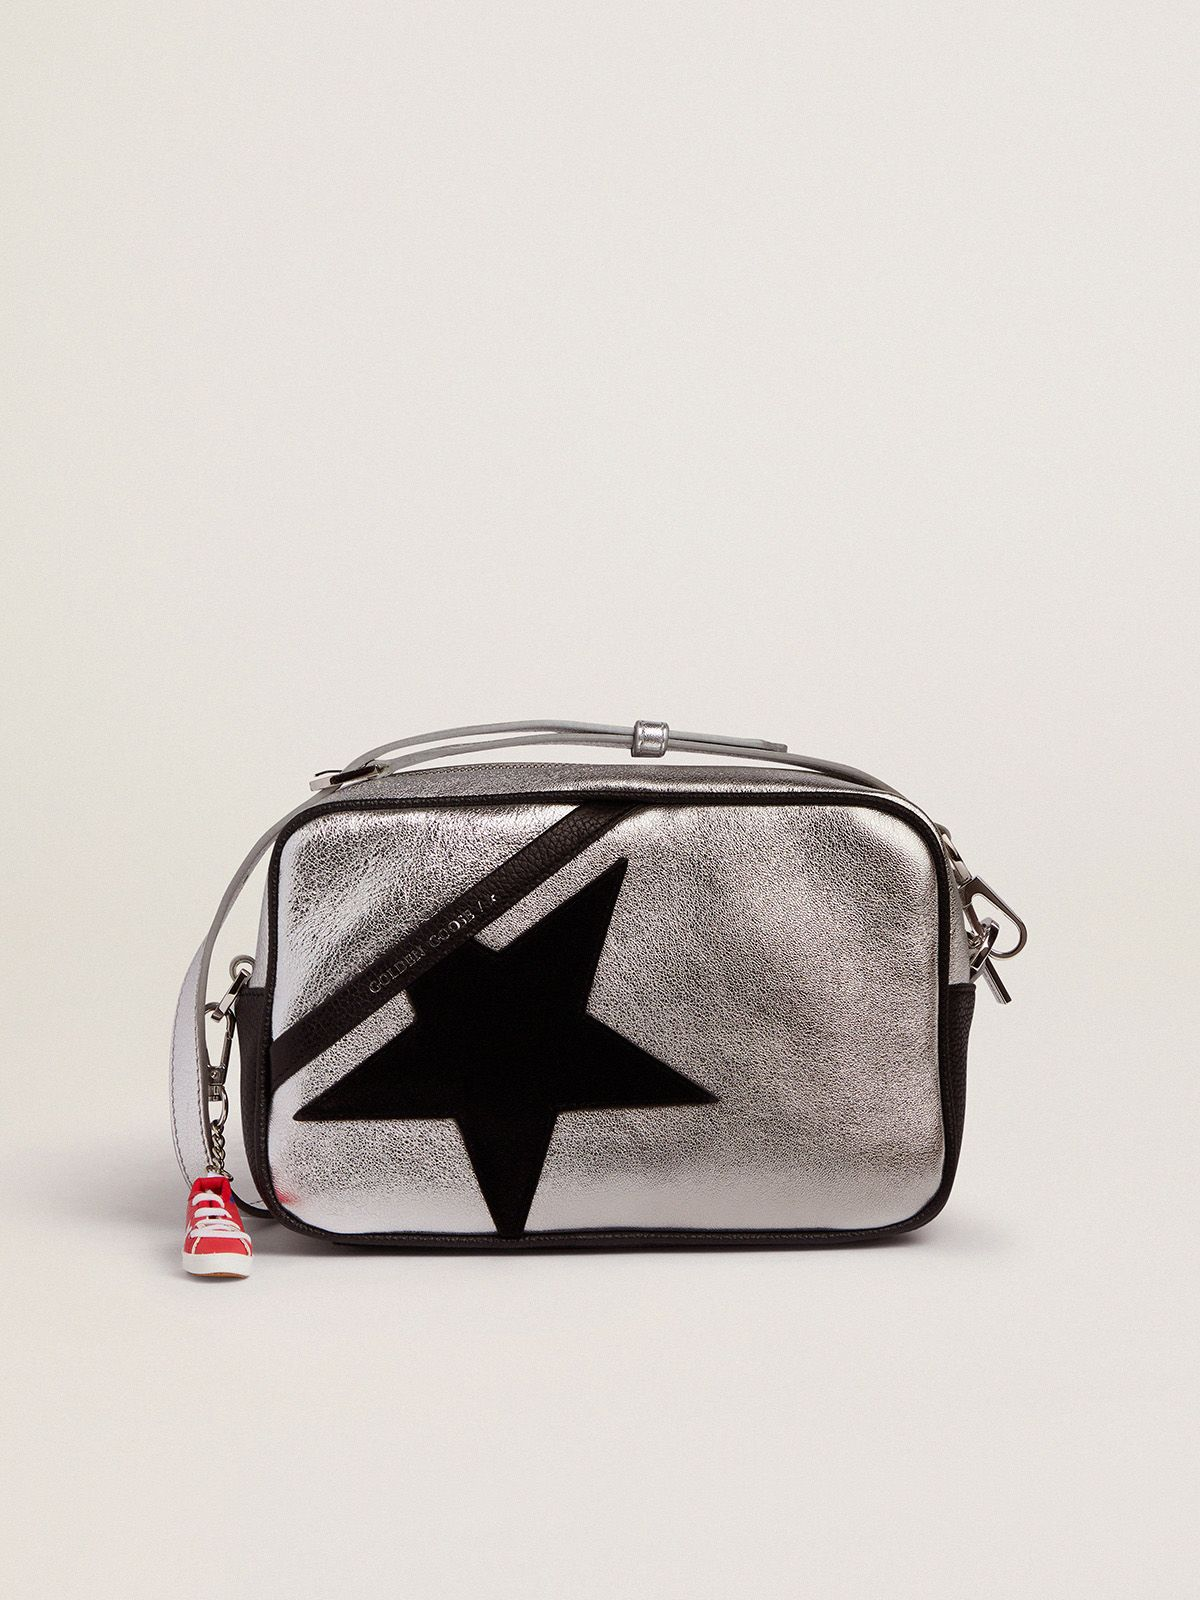 Silver Star Bag with black hammered leather inserts and black suede star